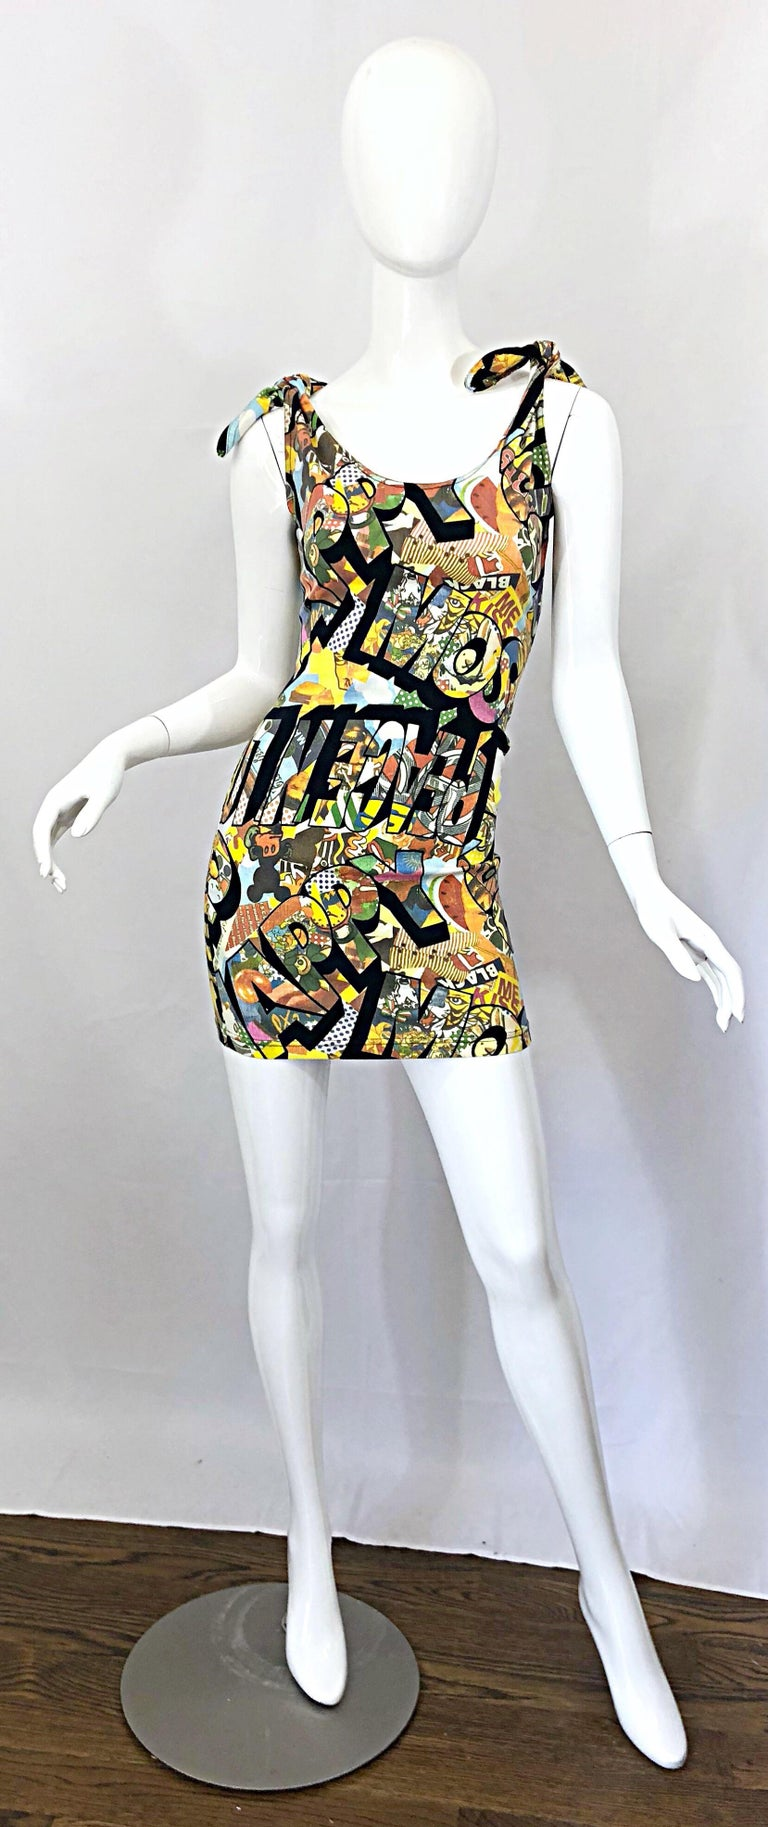 Vintage Moschino 1990s Mickey Mouse Disney Iconic Novelty Print 90s Mini Dress For Sale 9